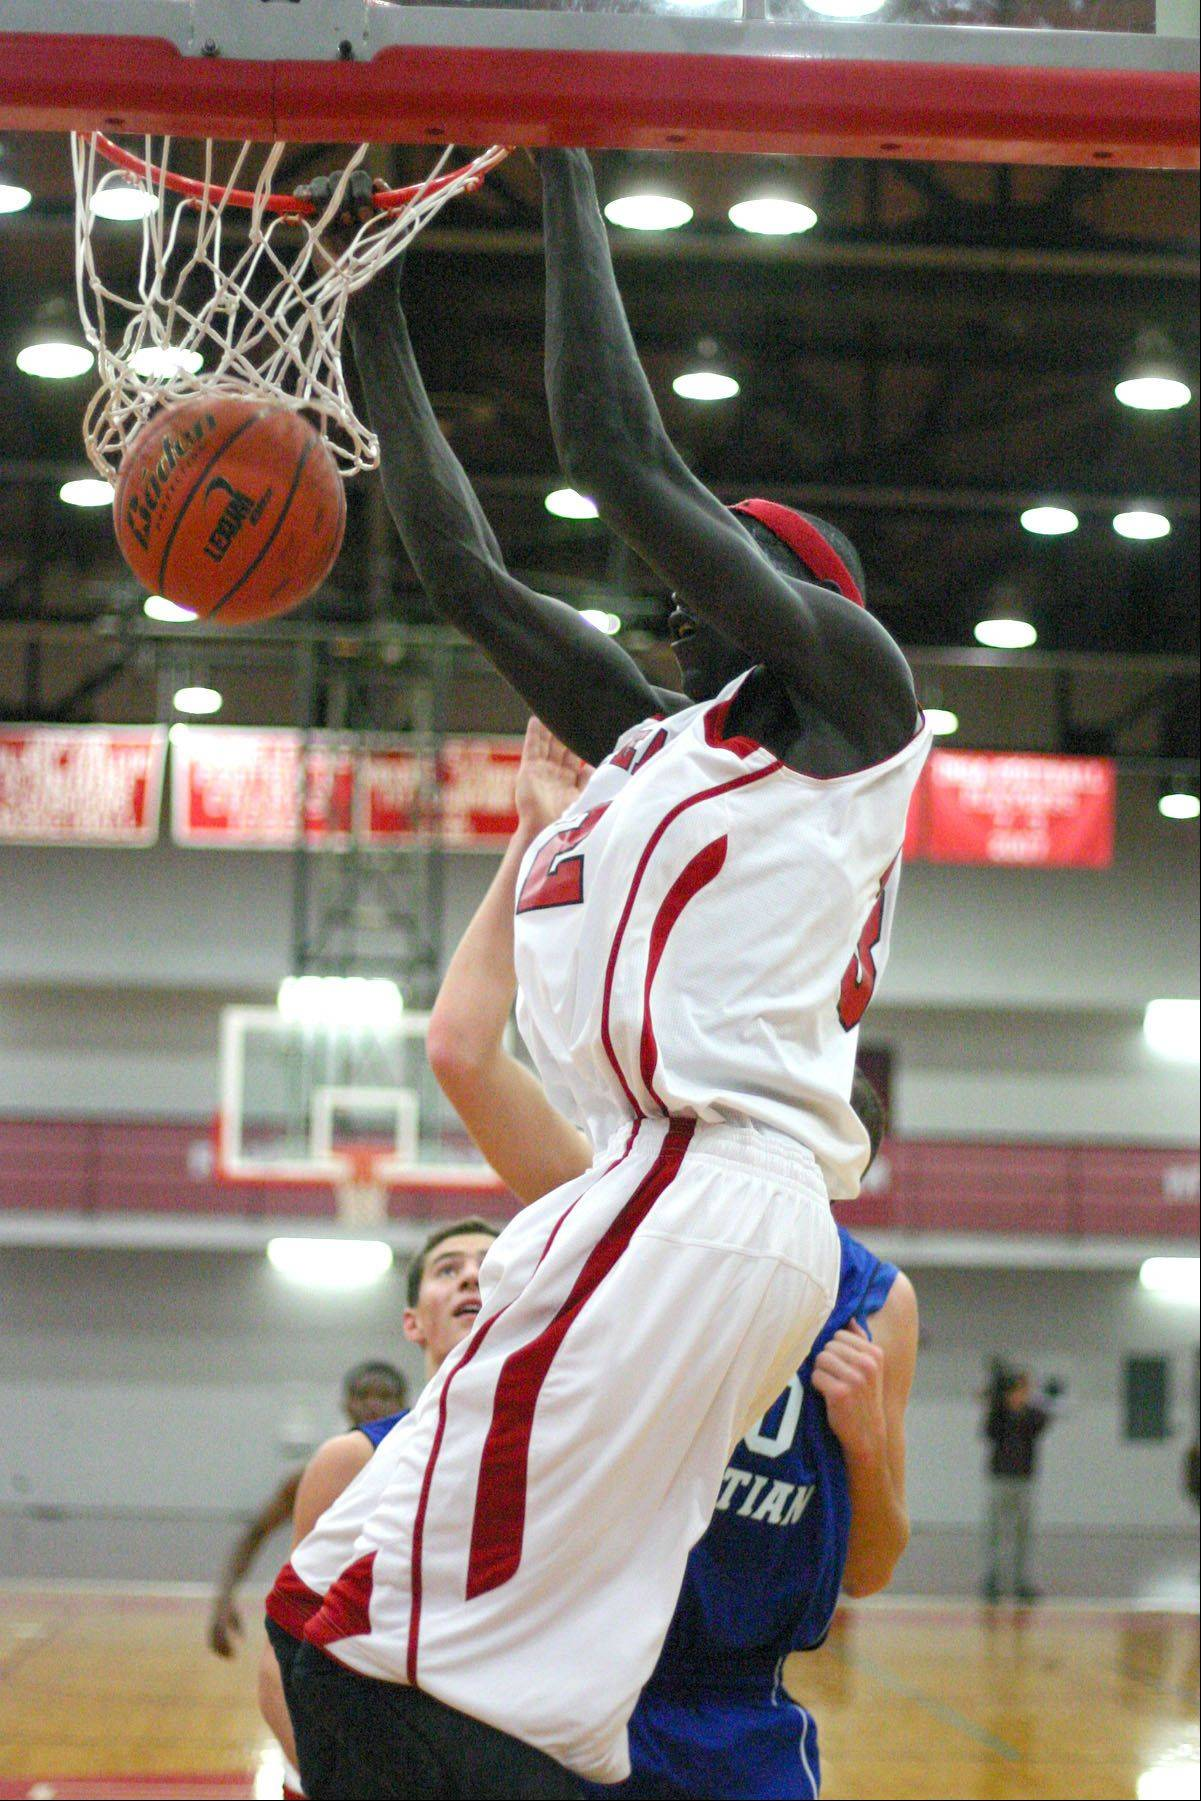 COURTESY OF MOOSEHEARTMooseheart junor Makur Puou dunks in Tuesday's 53-21 victory over Westminster Christian. Puou scored a game-high 16 points in the victory.